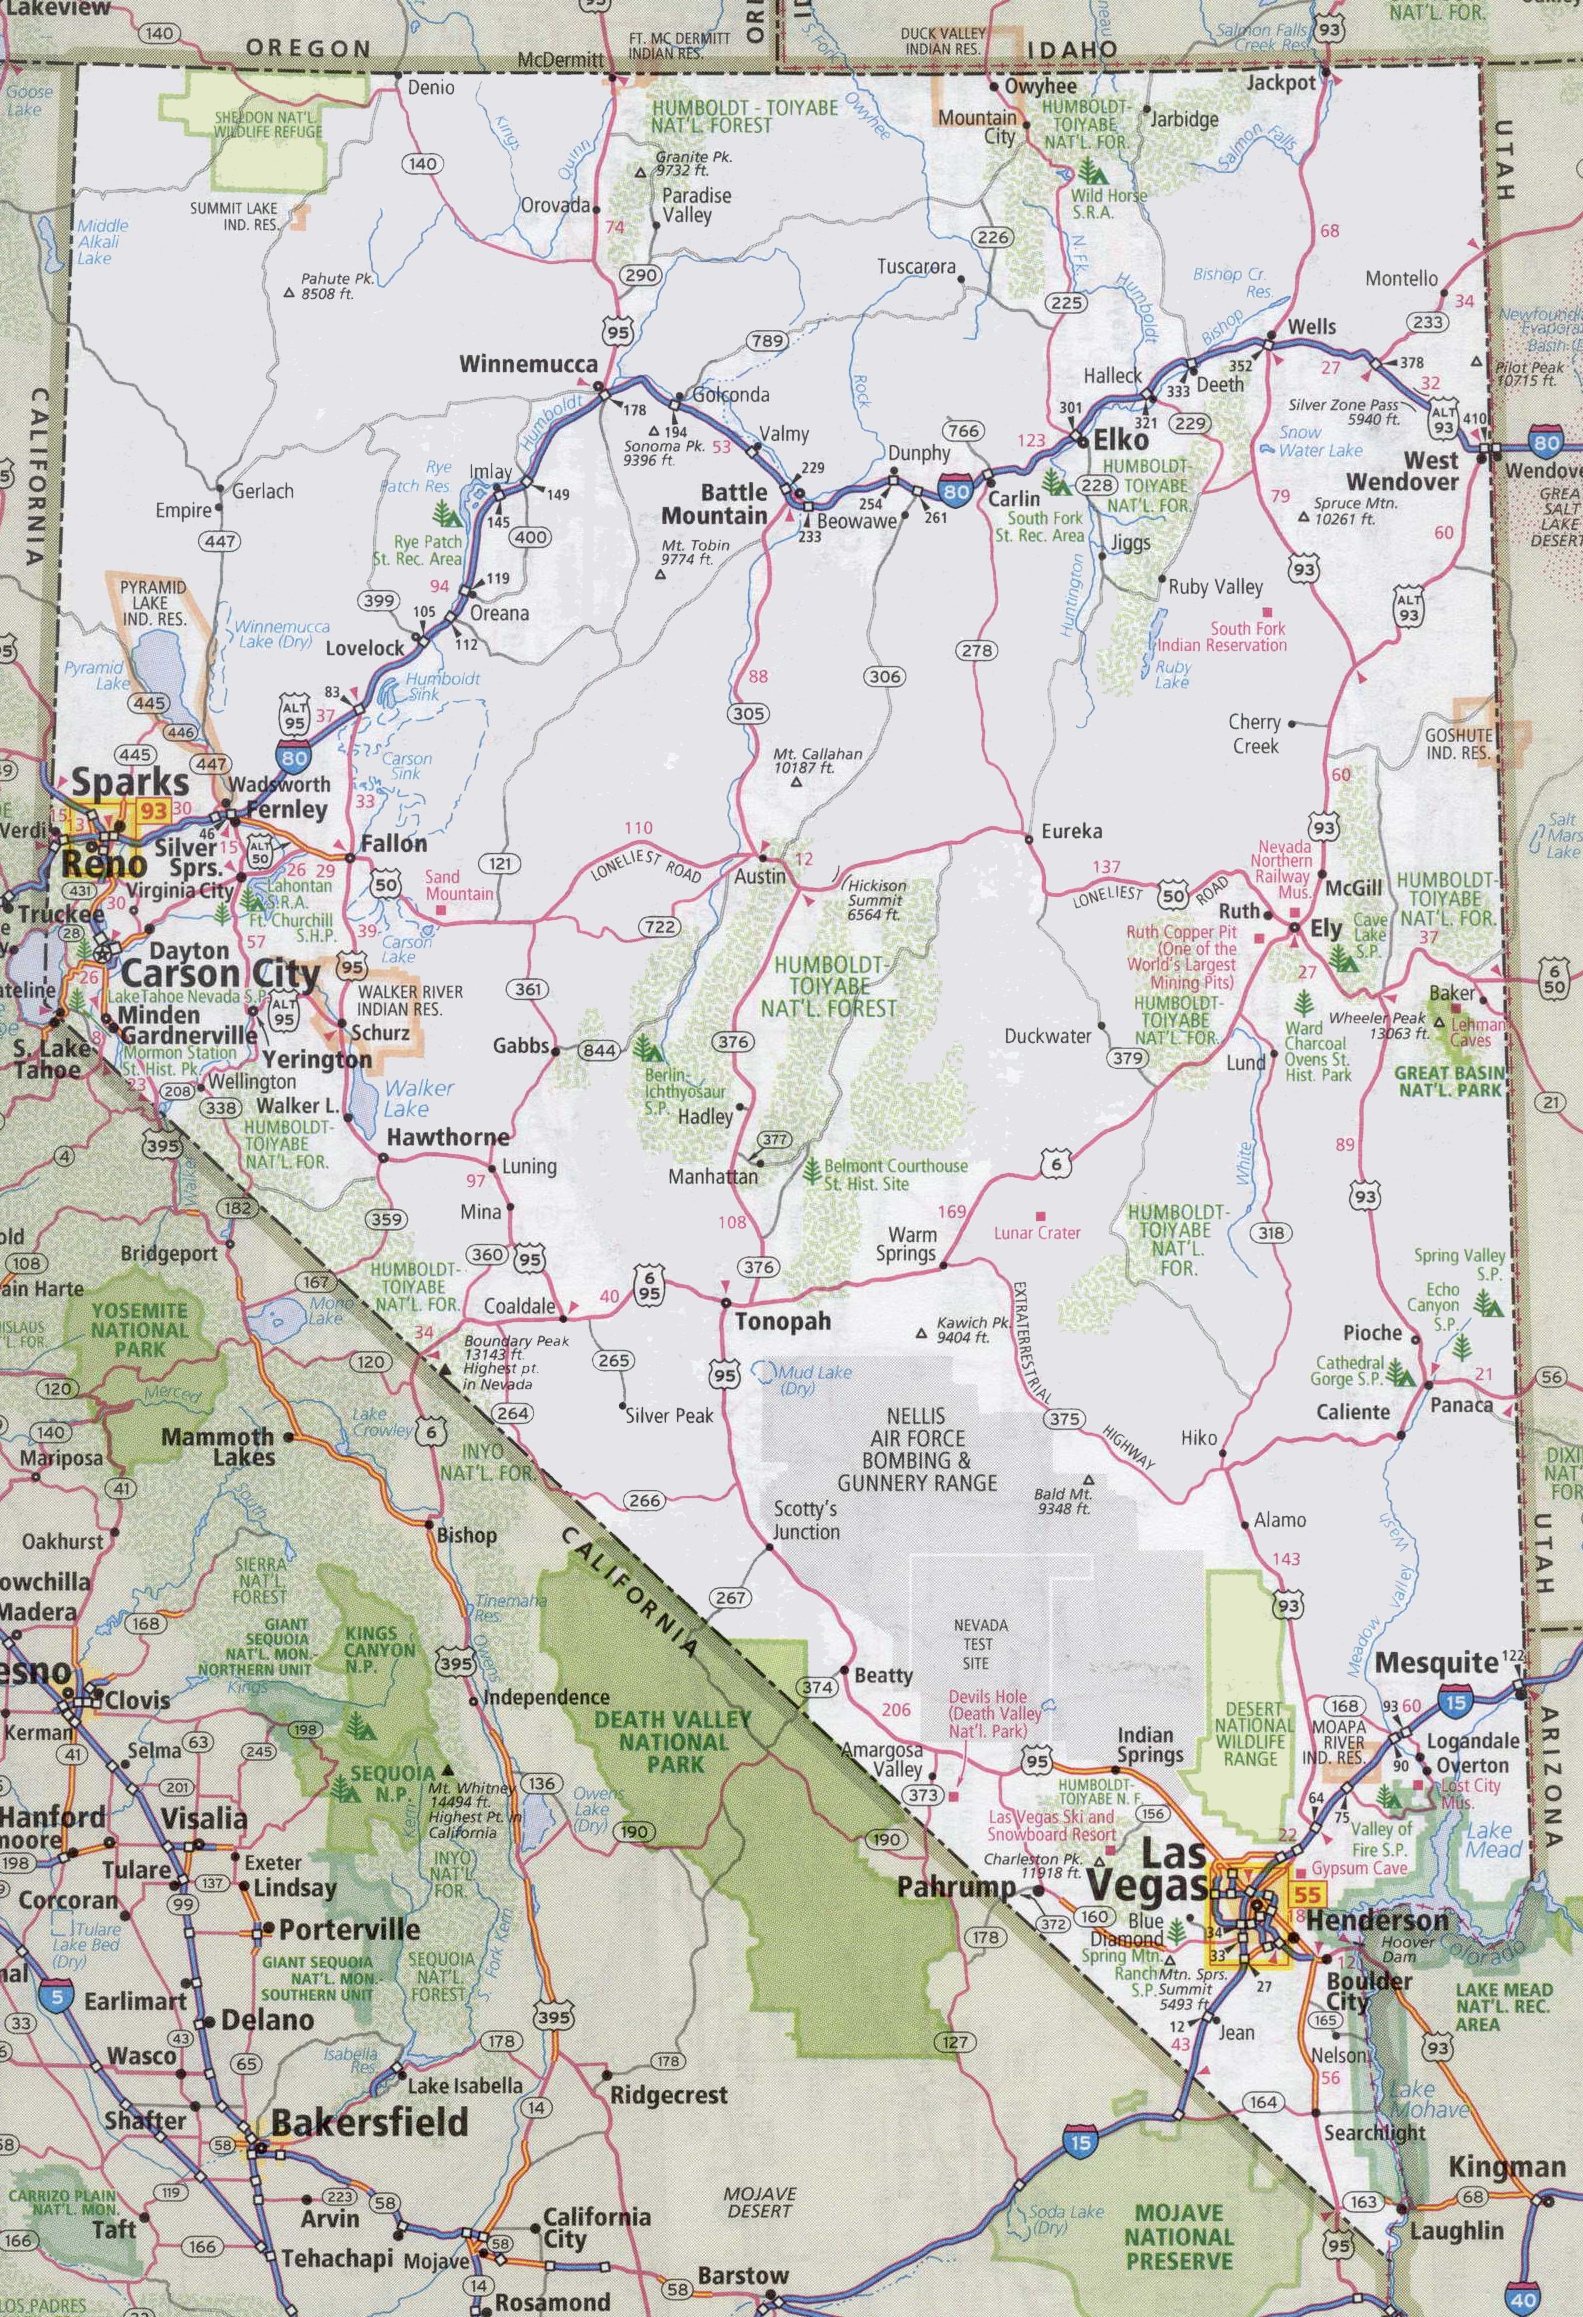 Nevada Road Map Picture Maps Road Map Of California And Oregon - Road Map Of California And Nevada